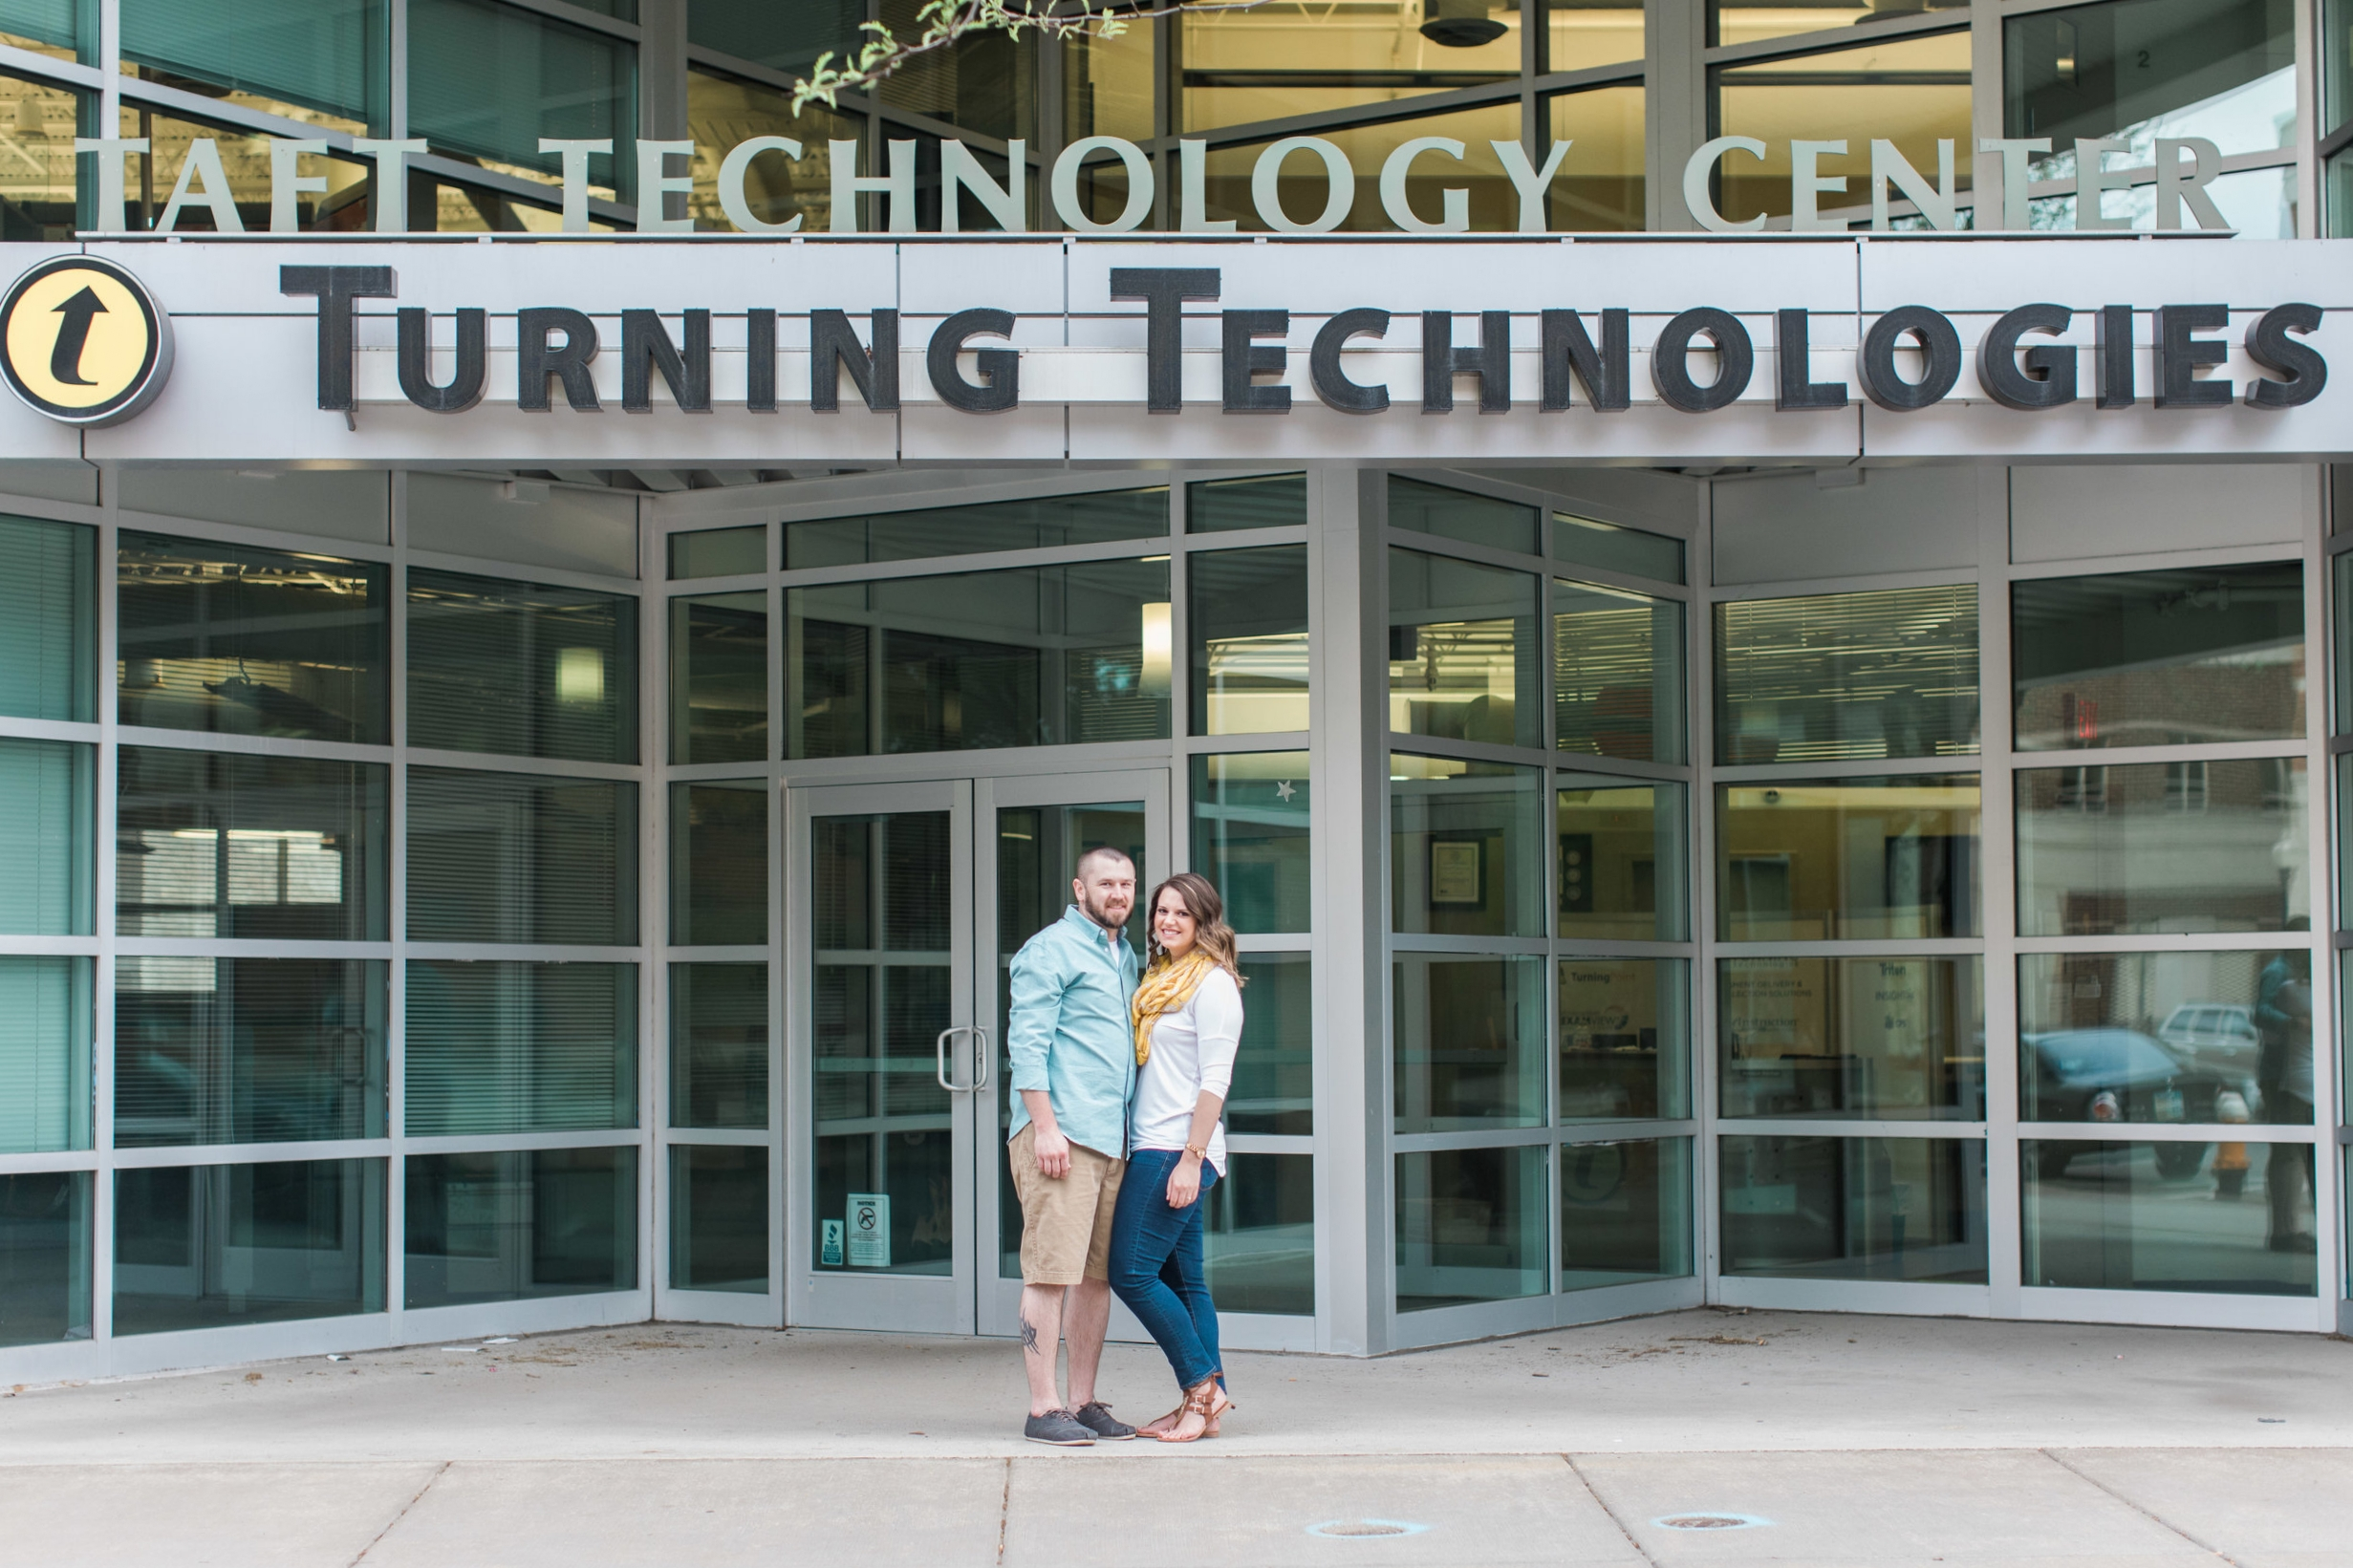 Turning Technologies....where it all started for these two!